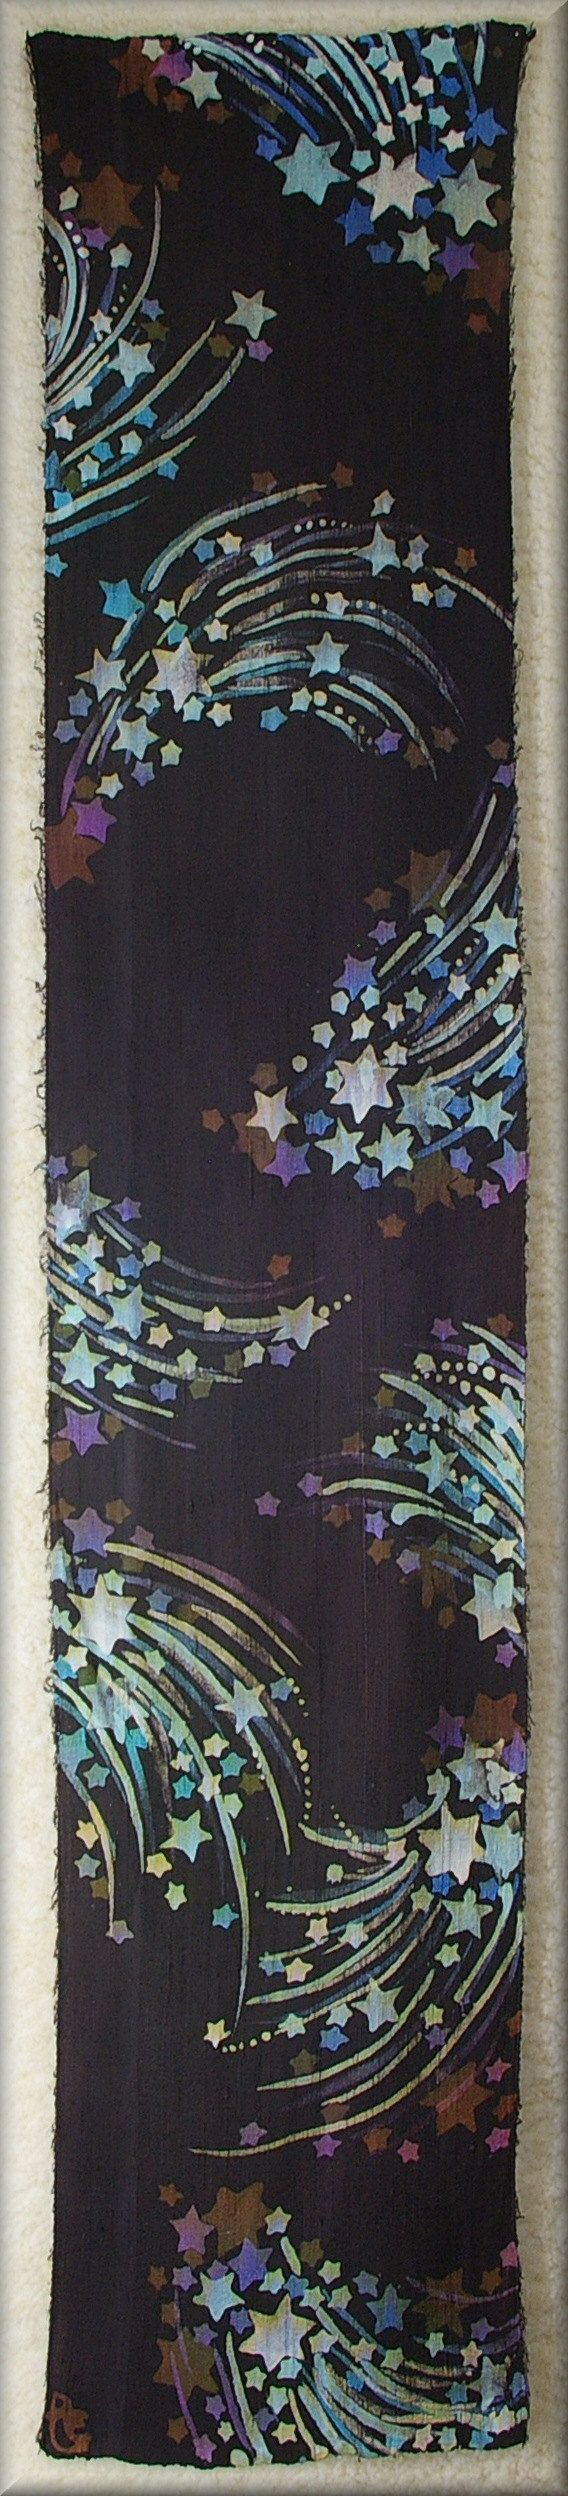 Shooting Stars in Blues Purples and Browns Background is Charcoal. - Dupioni Mens Silk Scarf (approx. 11x54 inches) by Laura Elderton, Silk in Art